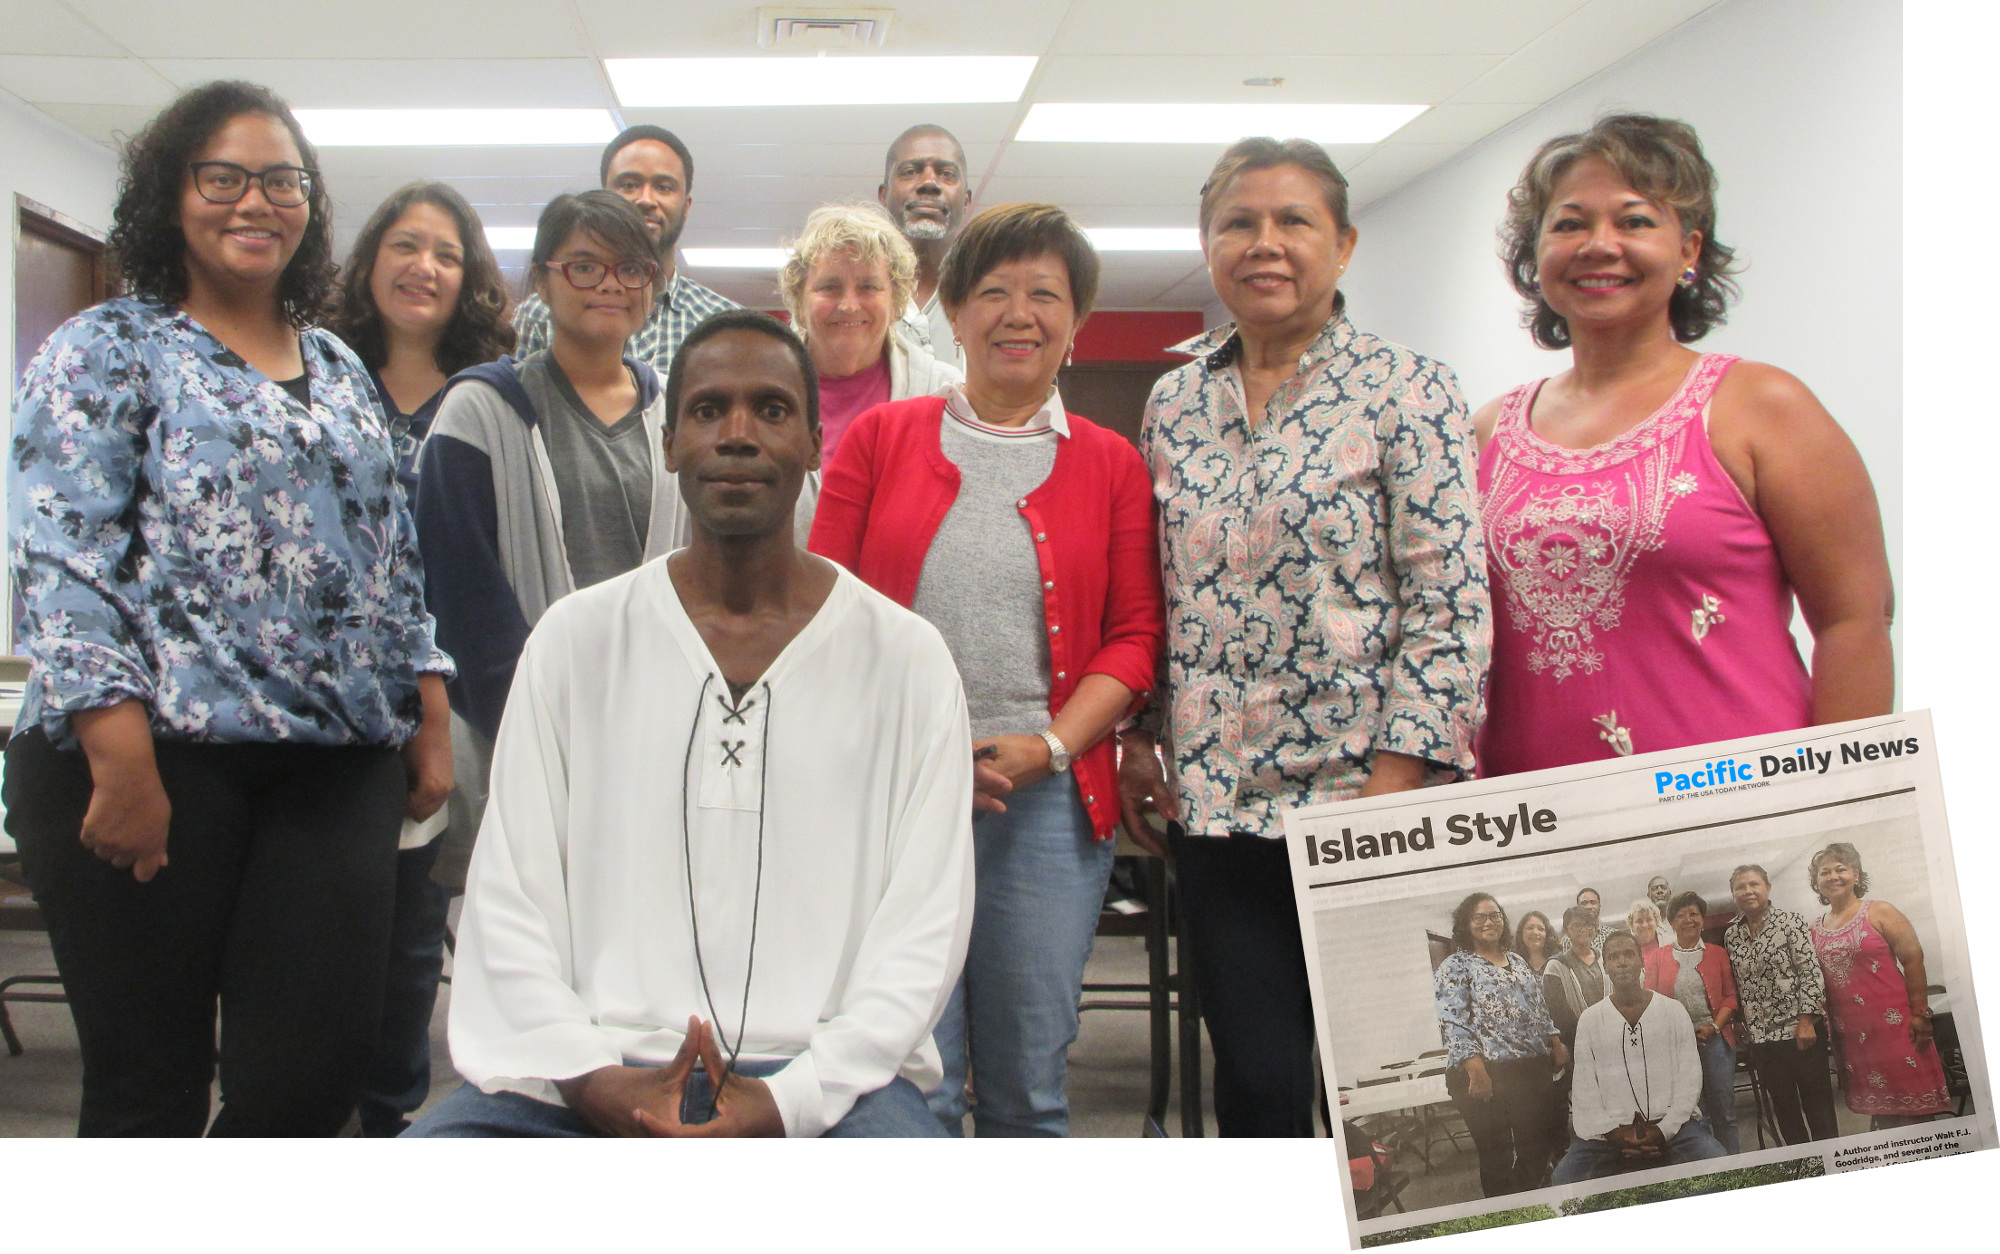 Author and instructor Walt F.J. Goodridge, and several of the attendees of Guam's First Writers Workshop: l.to r. Fadila K., Marie L., Sophie N., Tyrone B., Dianne S., Christopher A., Jeni Ann F., Kim B. and Dr.Sam M. (Not shown: Rlene S. and Louise.) [inset: Photo appears in the July 31 edition of Pacific Daily News' Island Style section a few days later!]